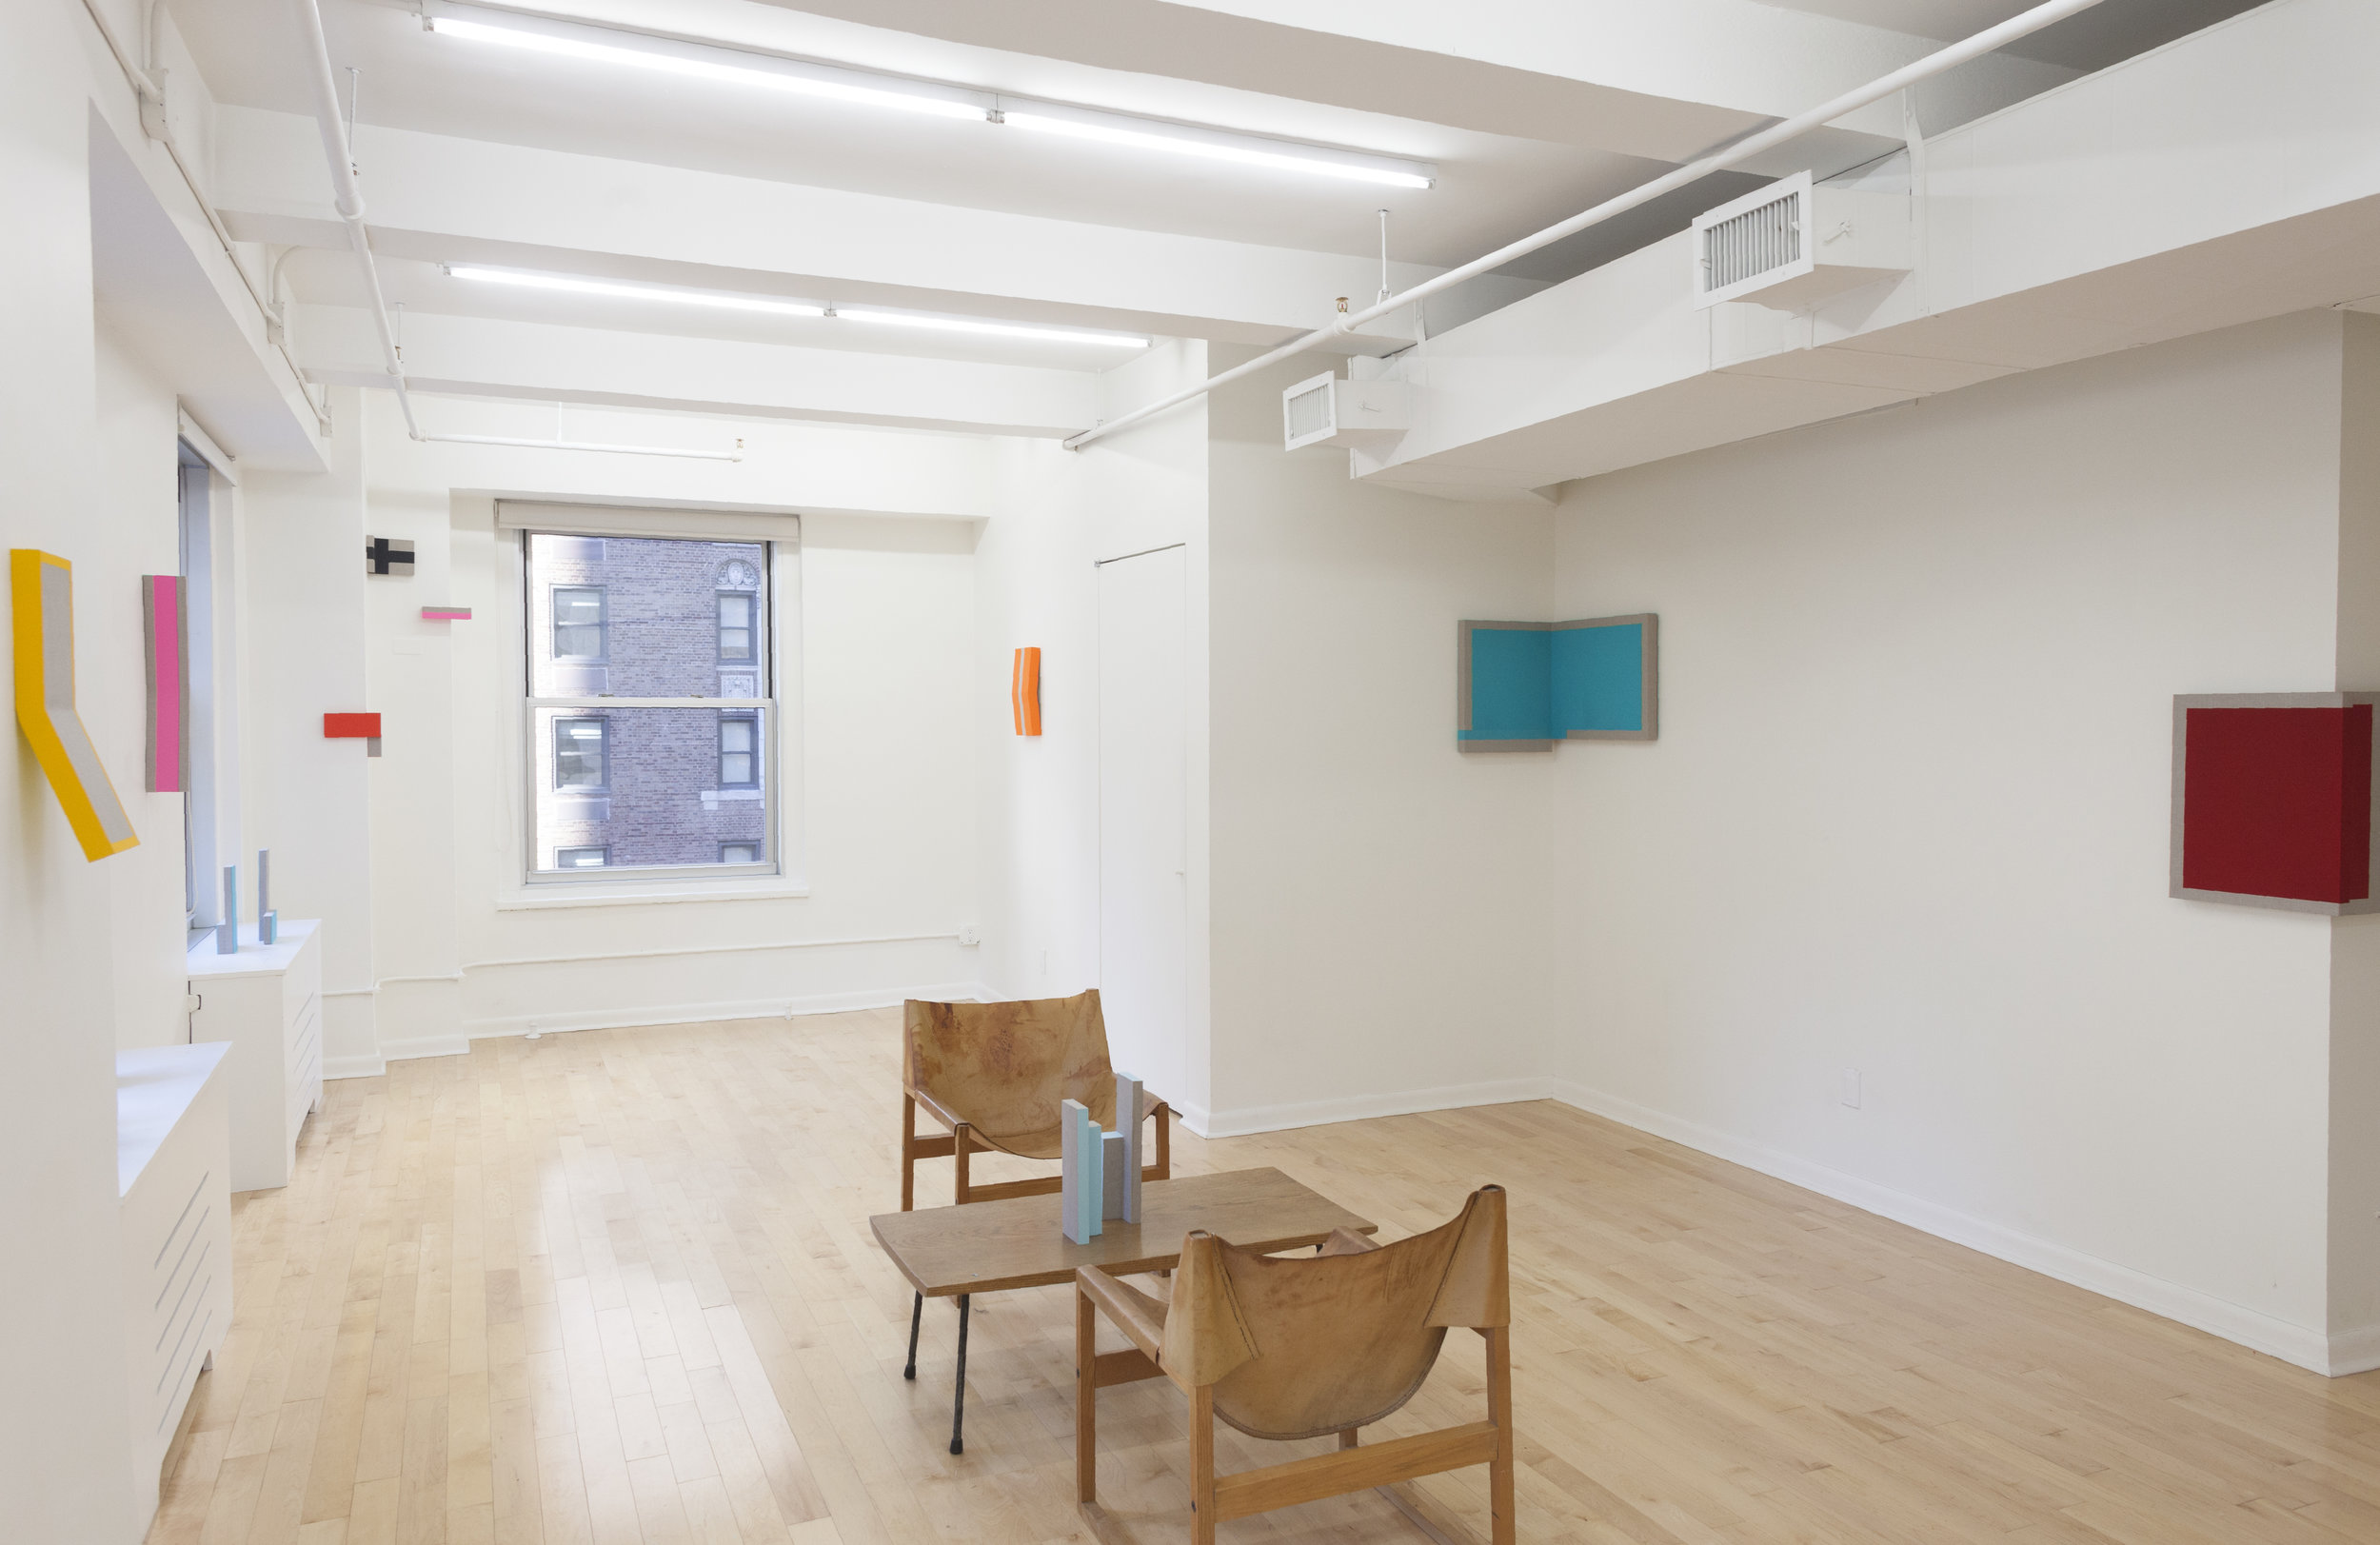 Louise Blyton ,  Butterflymilk NYC , Main Gallery Installation View